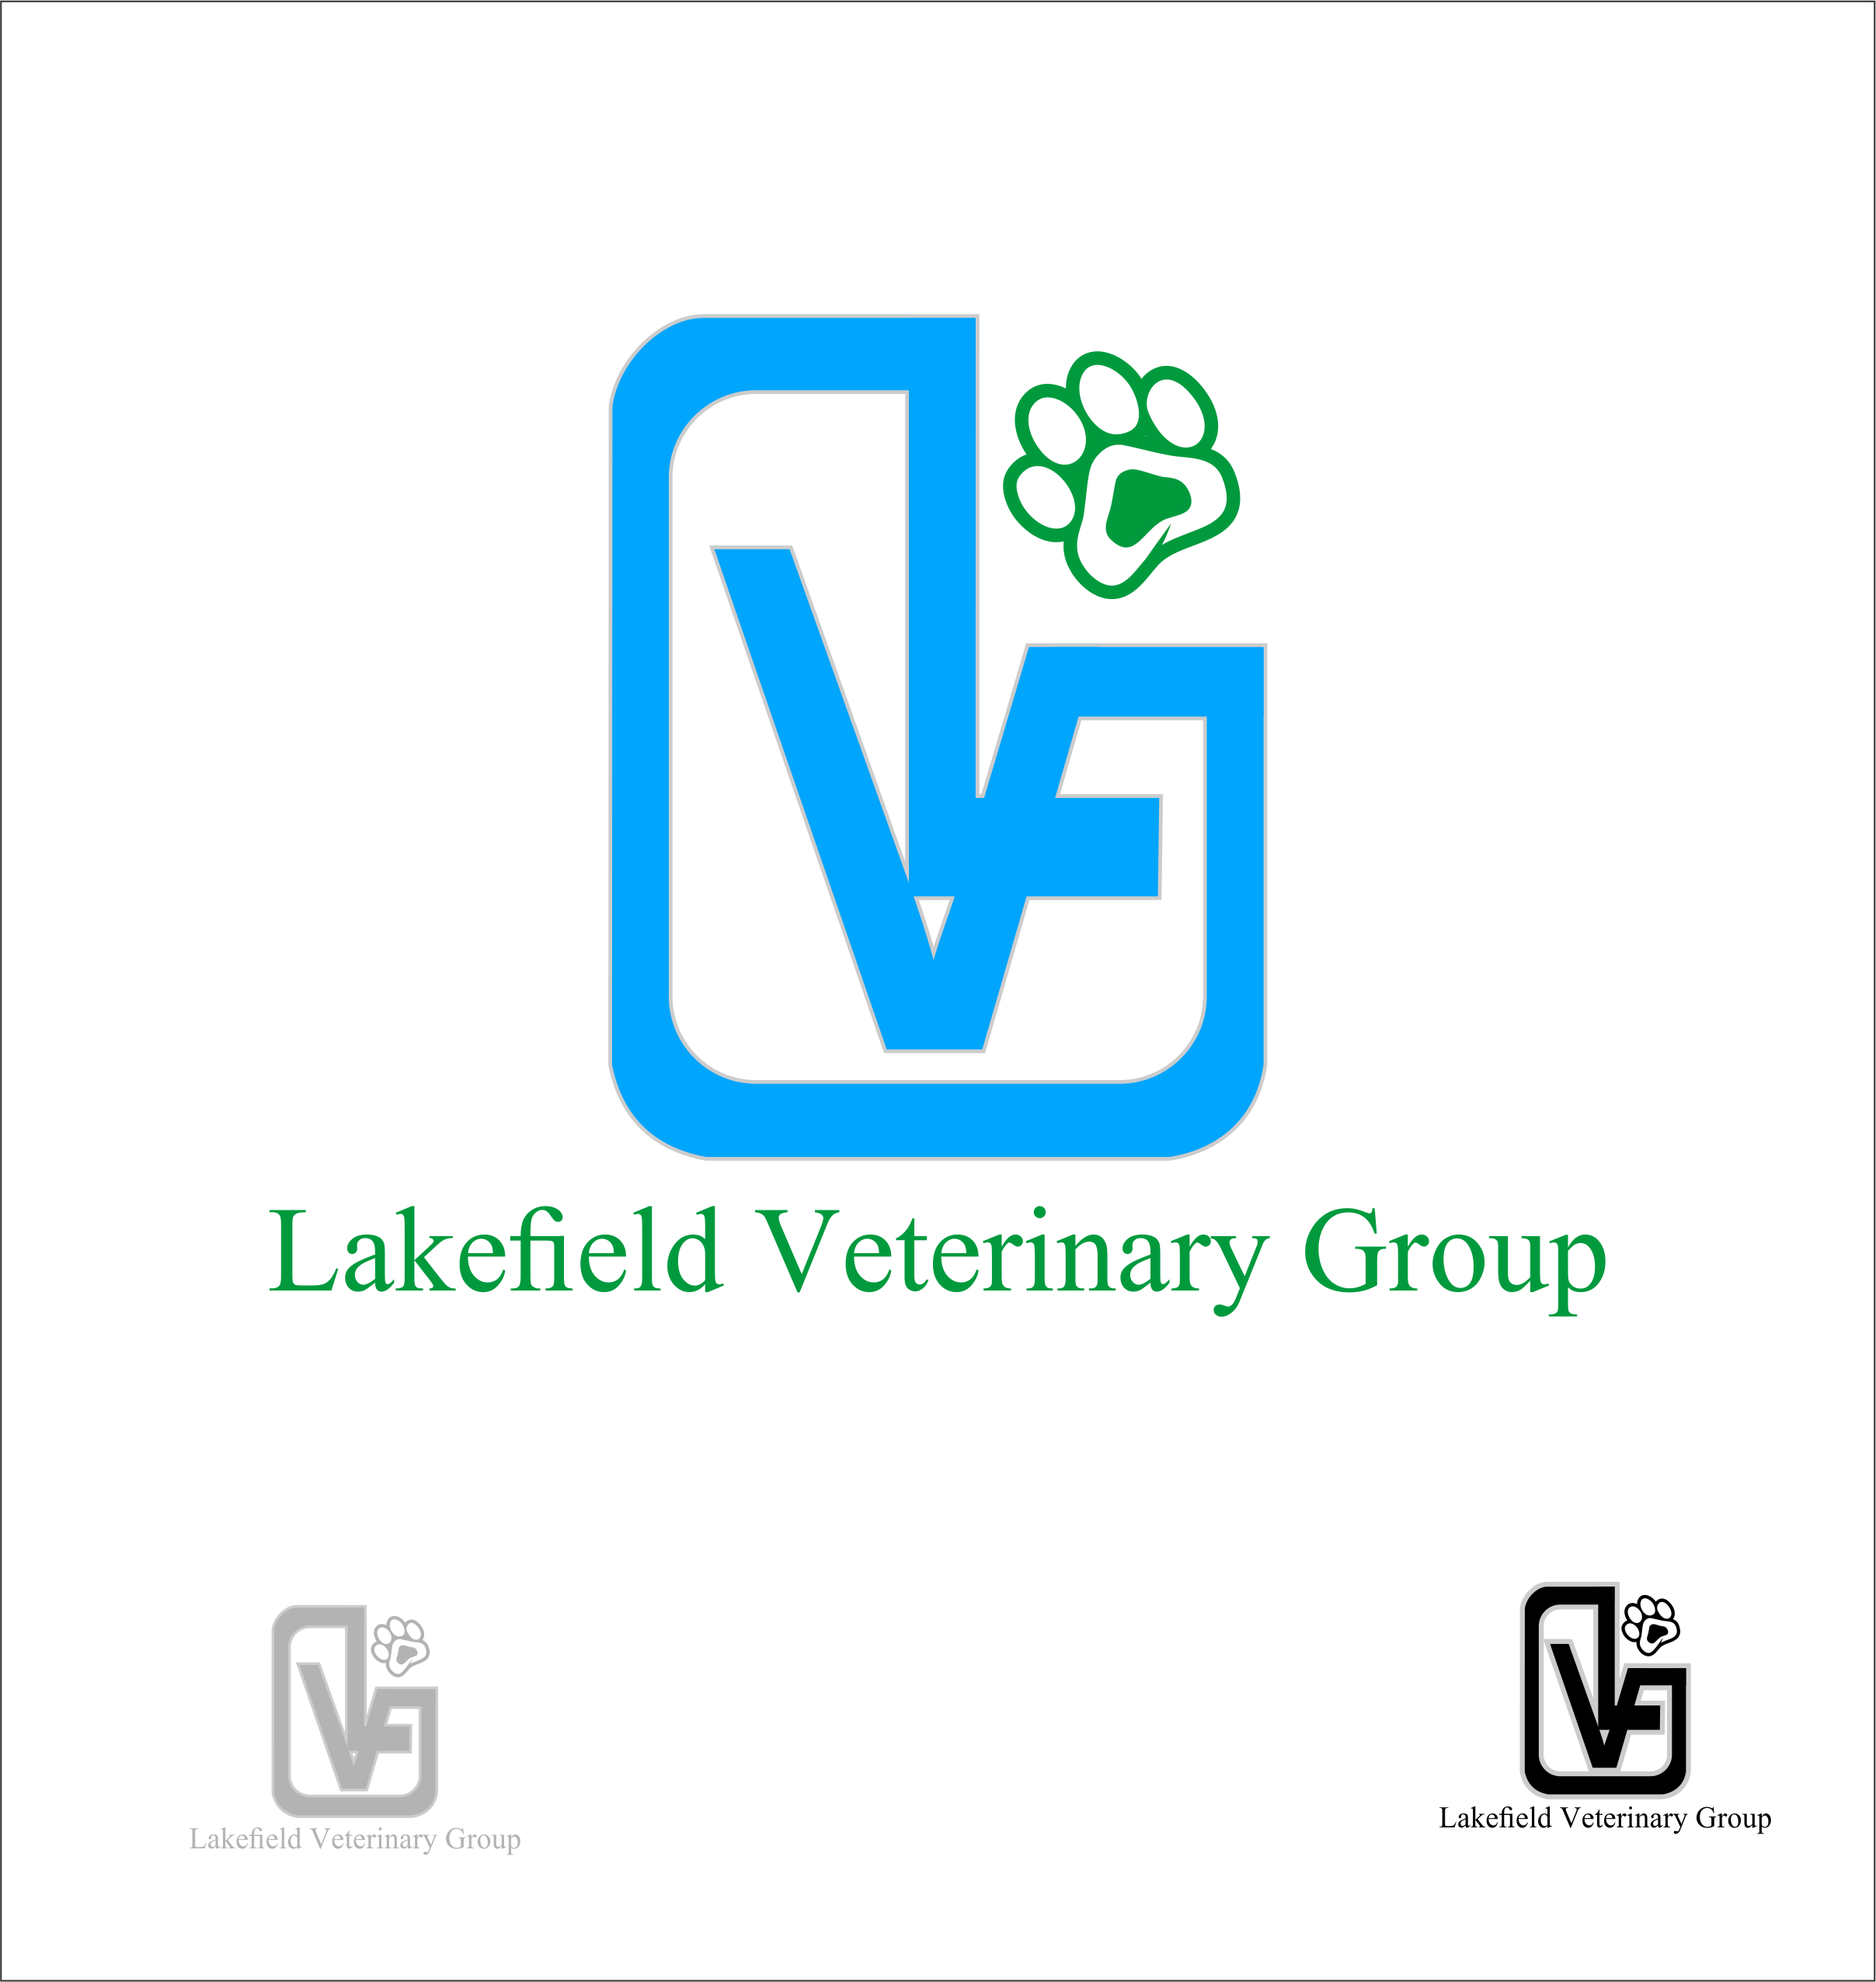 Logo Design by snow - Entry No. 27 in the Logo Design Contest Inspiring Logo Design for Lakefield Veterinary Group.